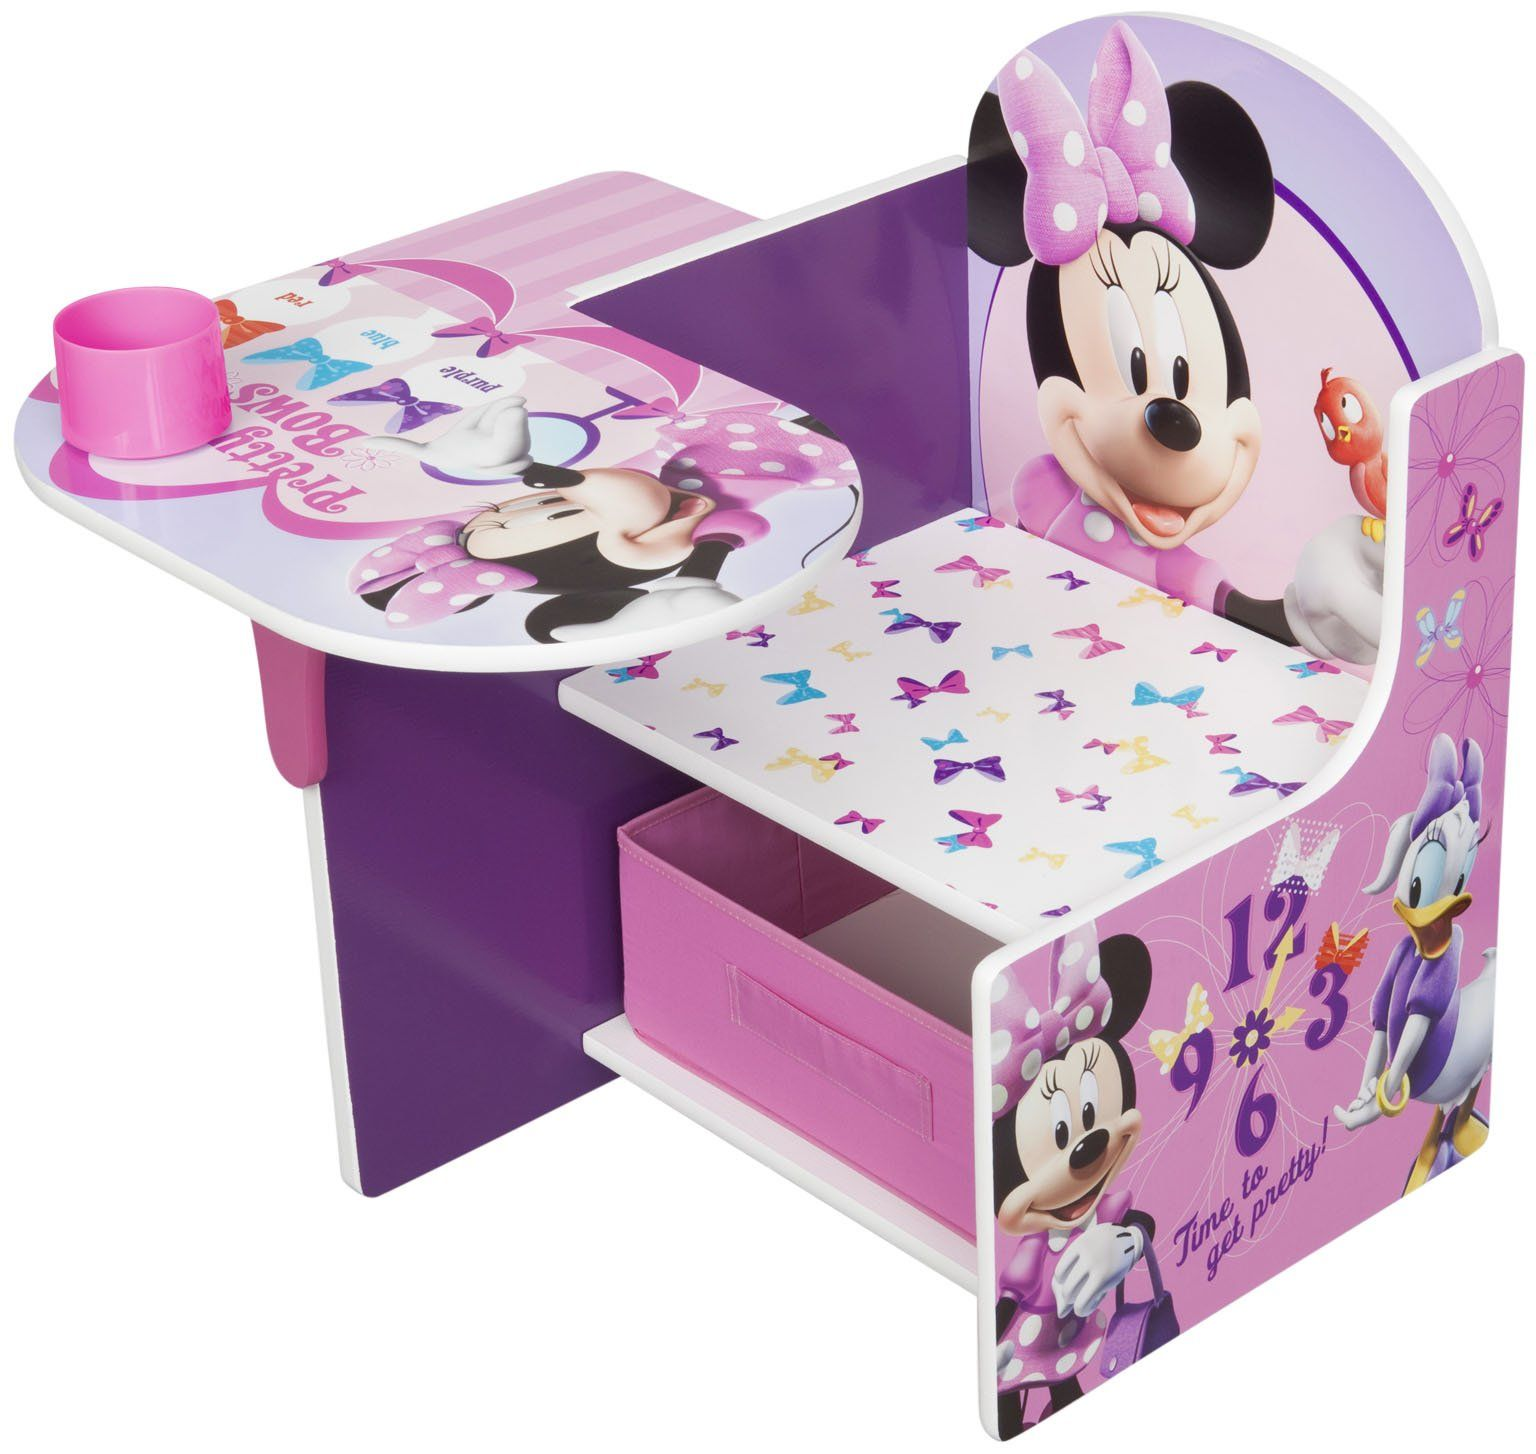 Minnie Mouse Bedroom | disney girls | Pinterest | Children bedroom ...